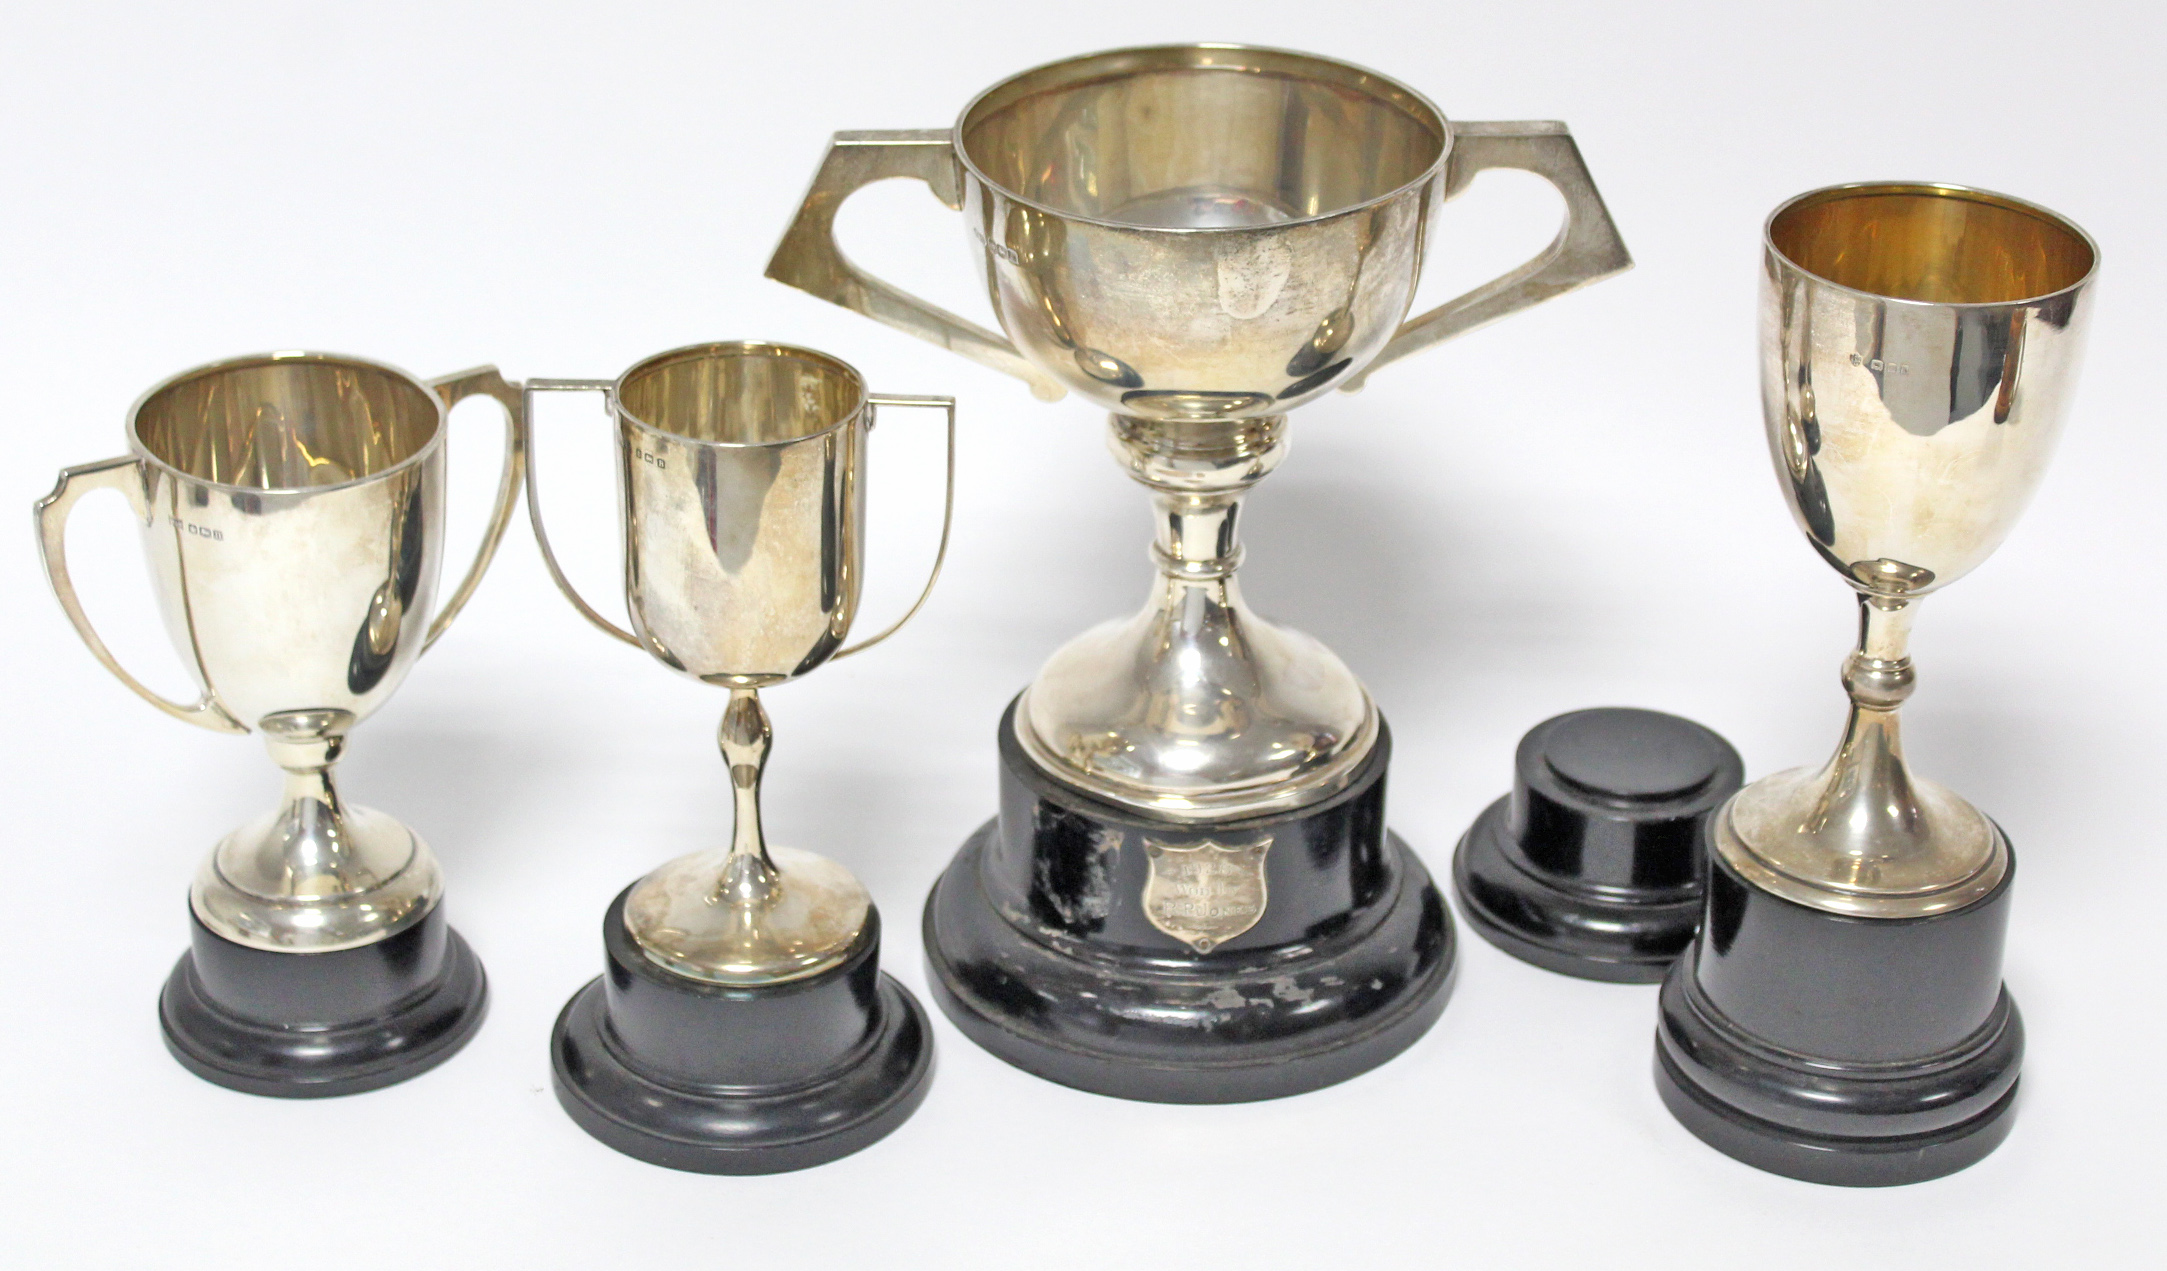 A George V two-handled trophy cup, Sheffield 1924, by Fattorini & Sons Ltd; together with three